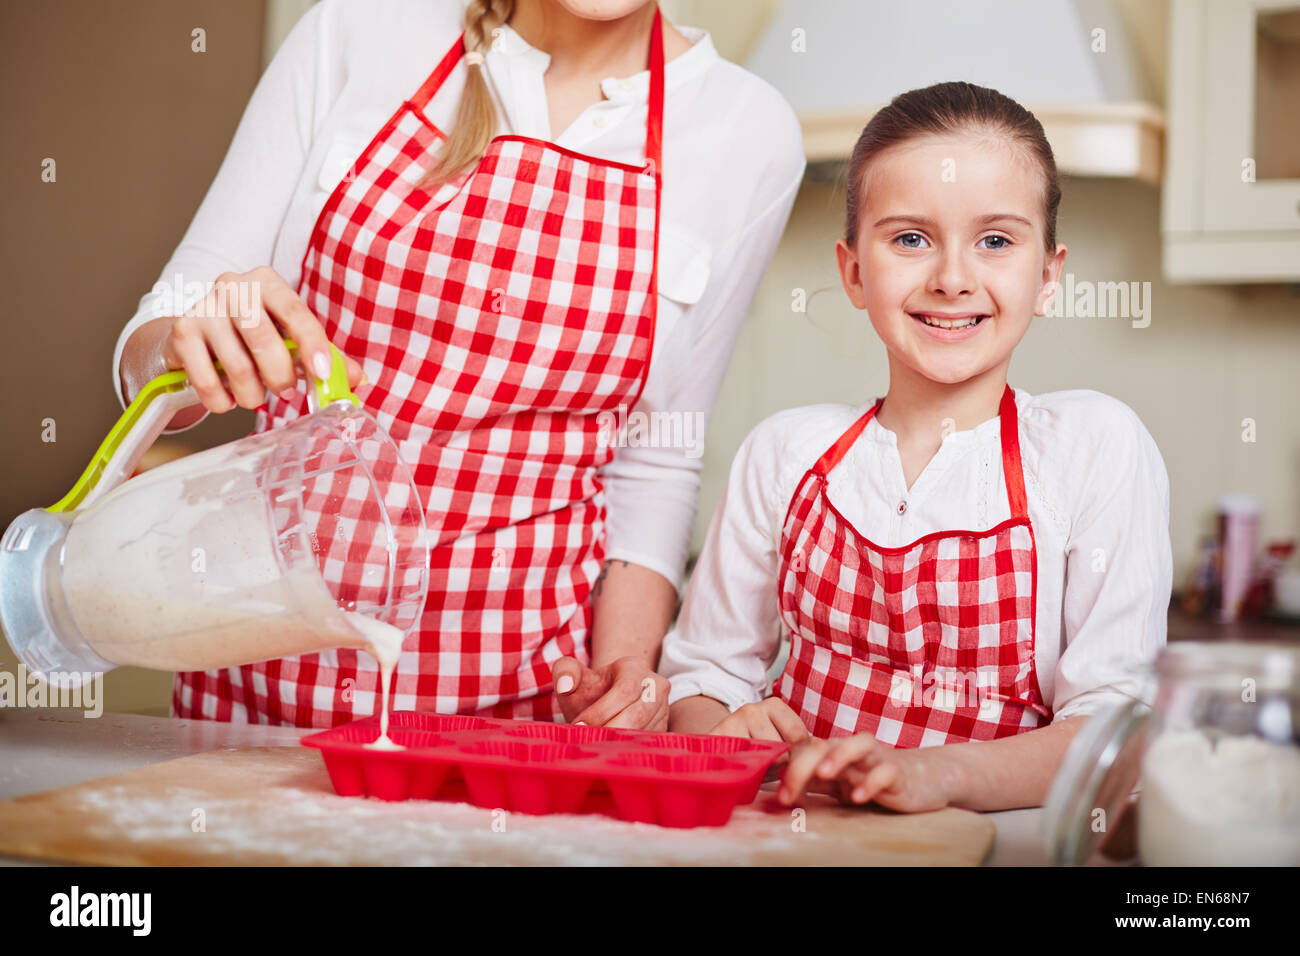 Adorable girl looking at camera while her mother filling in muffin forms with liquid dough - Stock Image